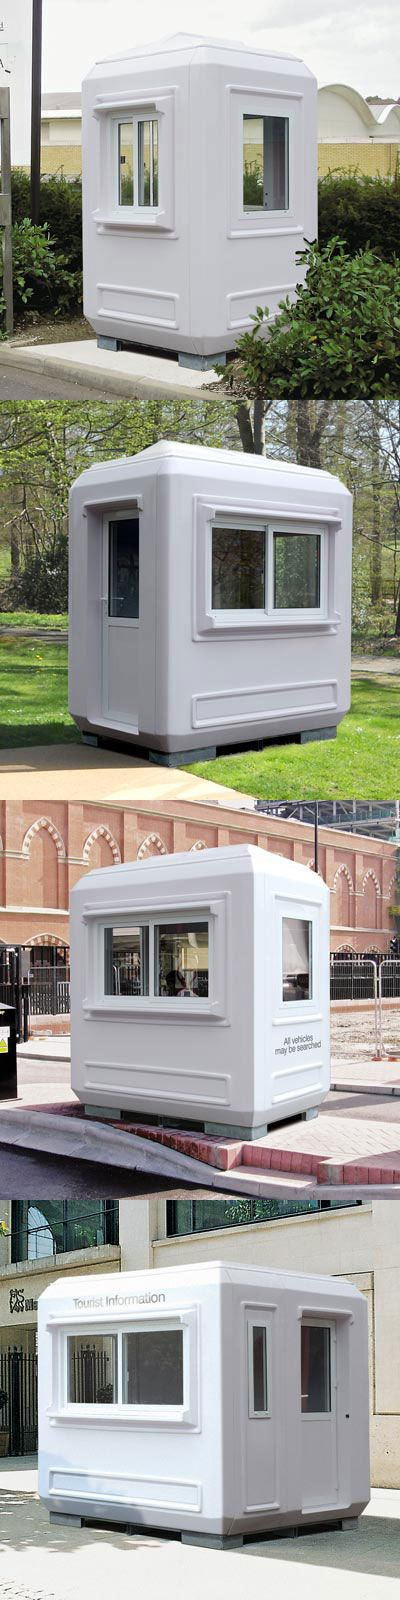 Our GRP Genesis™ kiosks are robust, strong and portable. Insulated and weather resistant they are ideal for a large variety of outdoor applications such as ticket kiosks, toll booths and petrol forecourts kiosks. #ModularBuildings #GlasdonUK